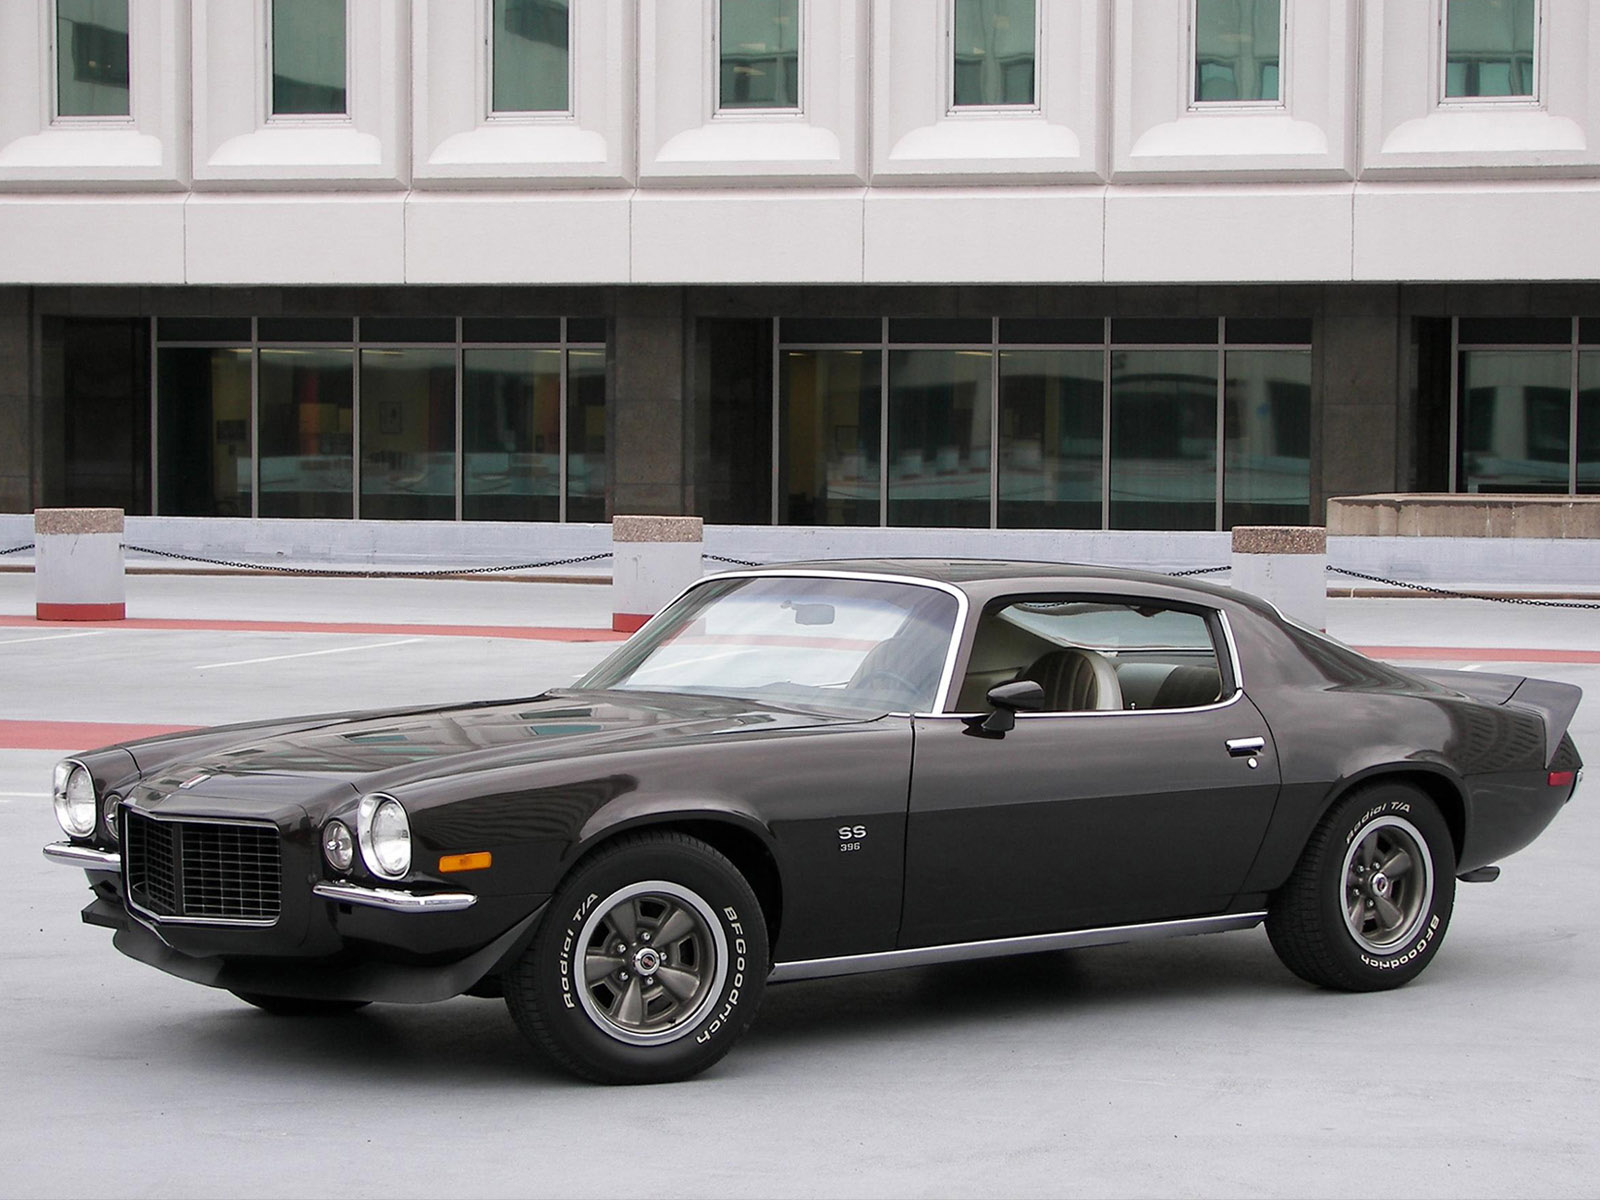 Chevrolet camaro 1972 photo - 5